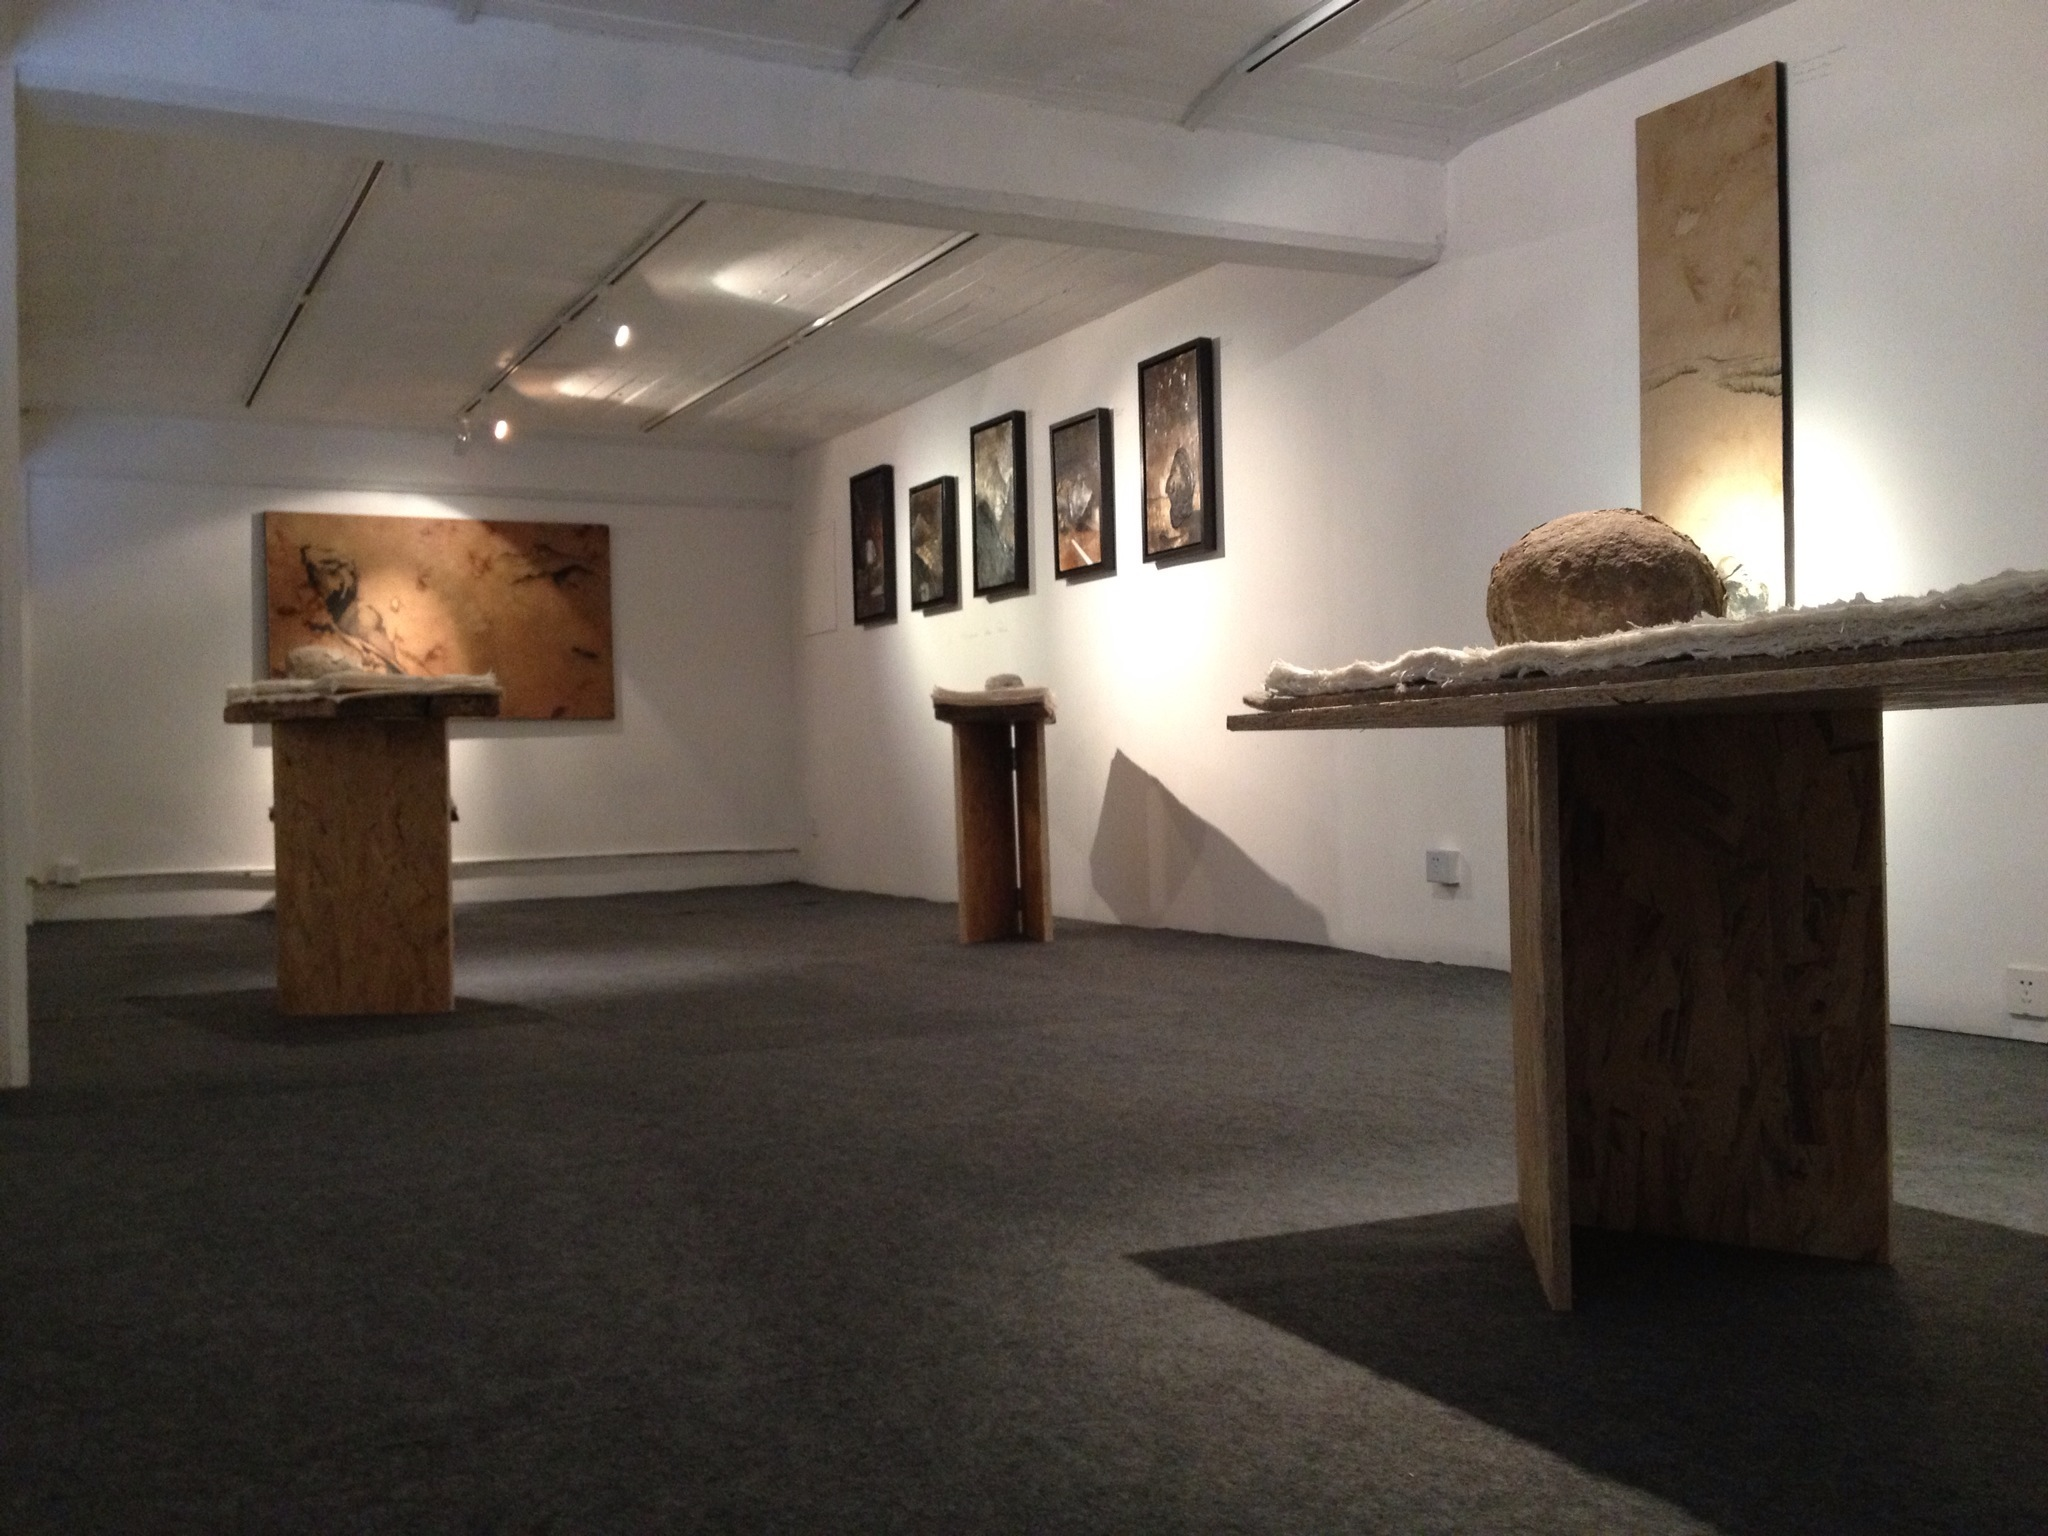 Philippe Staib Gallery